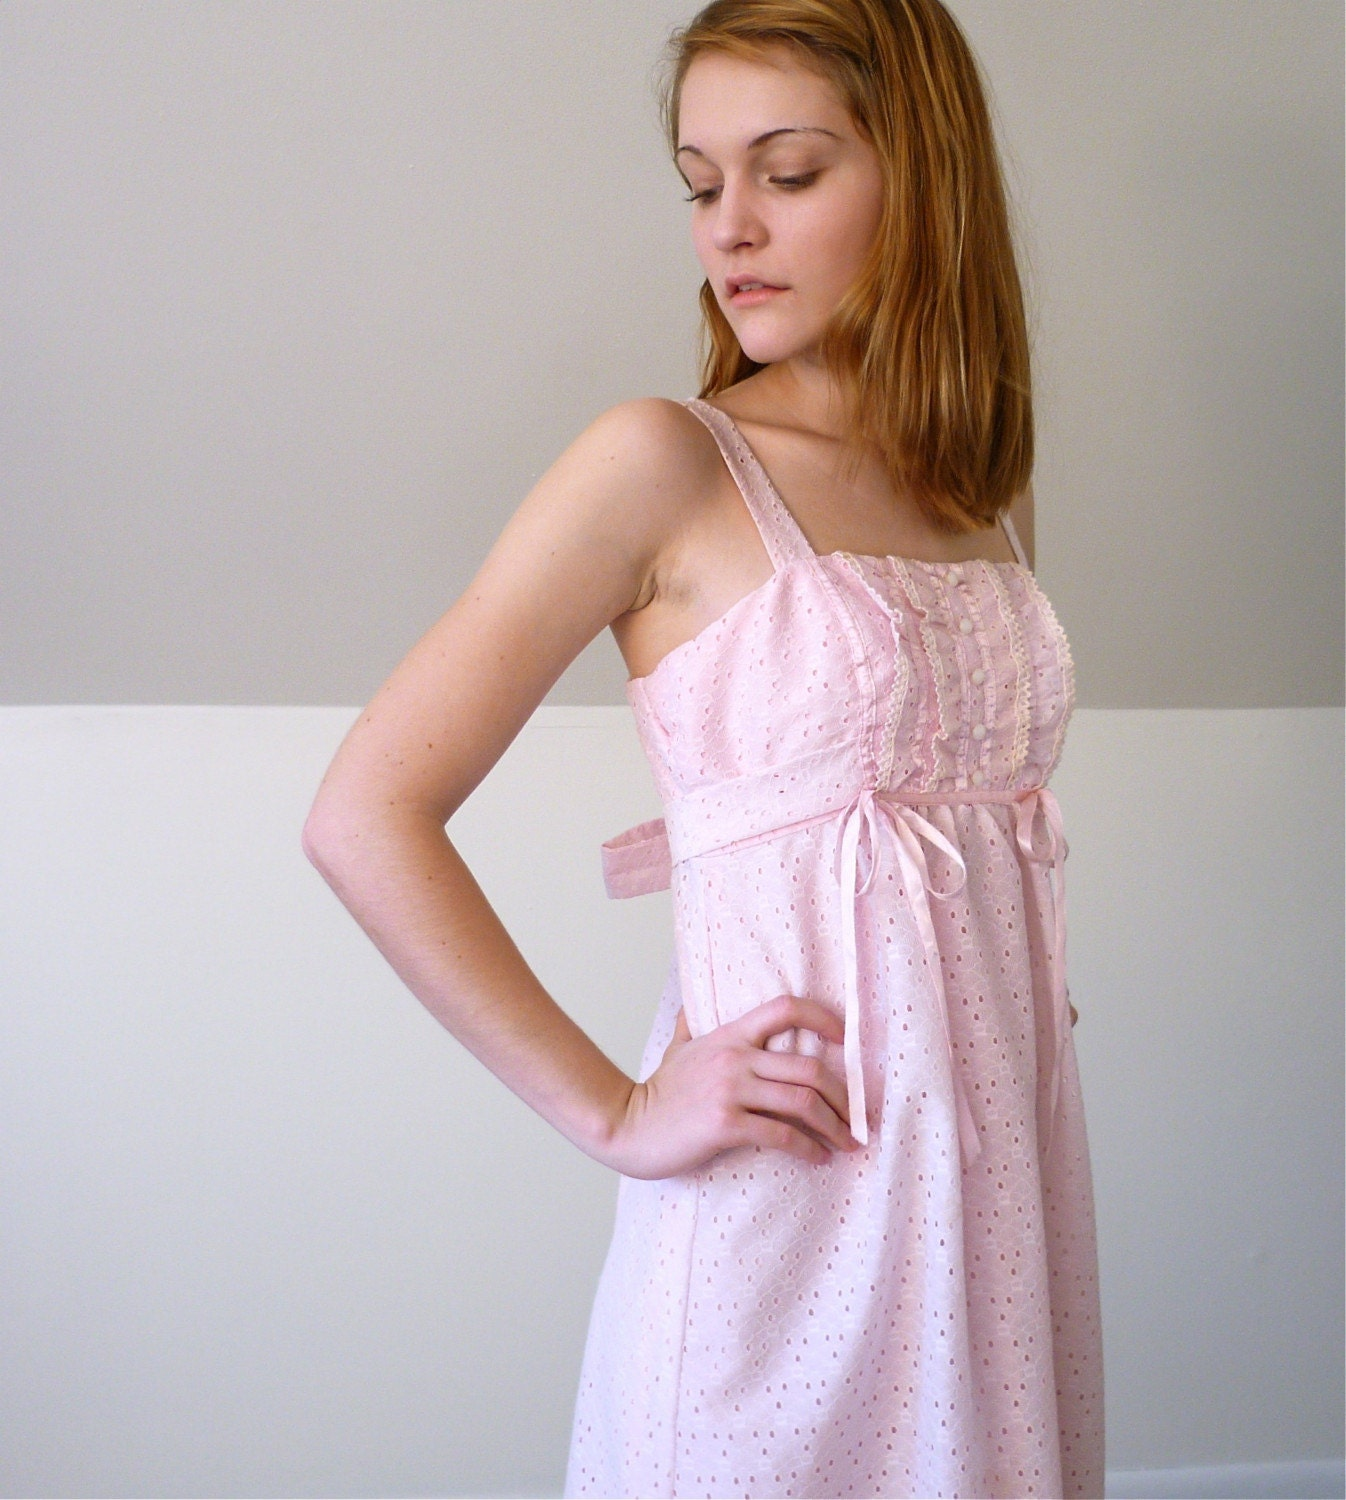 The Pink Eyelet and Lace Dress